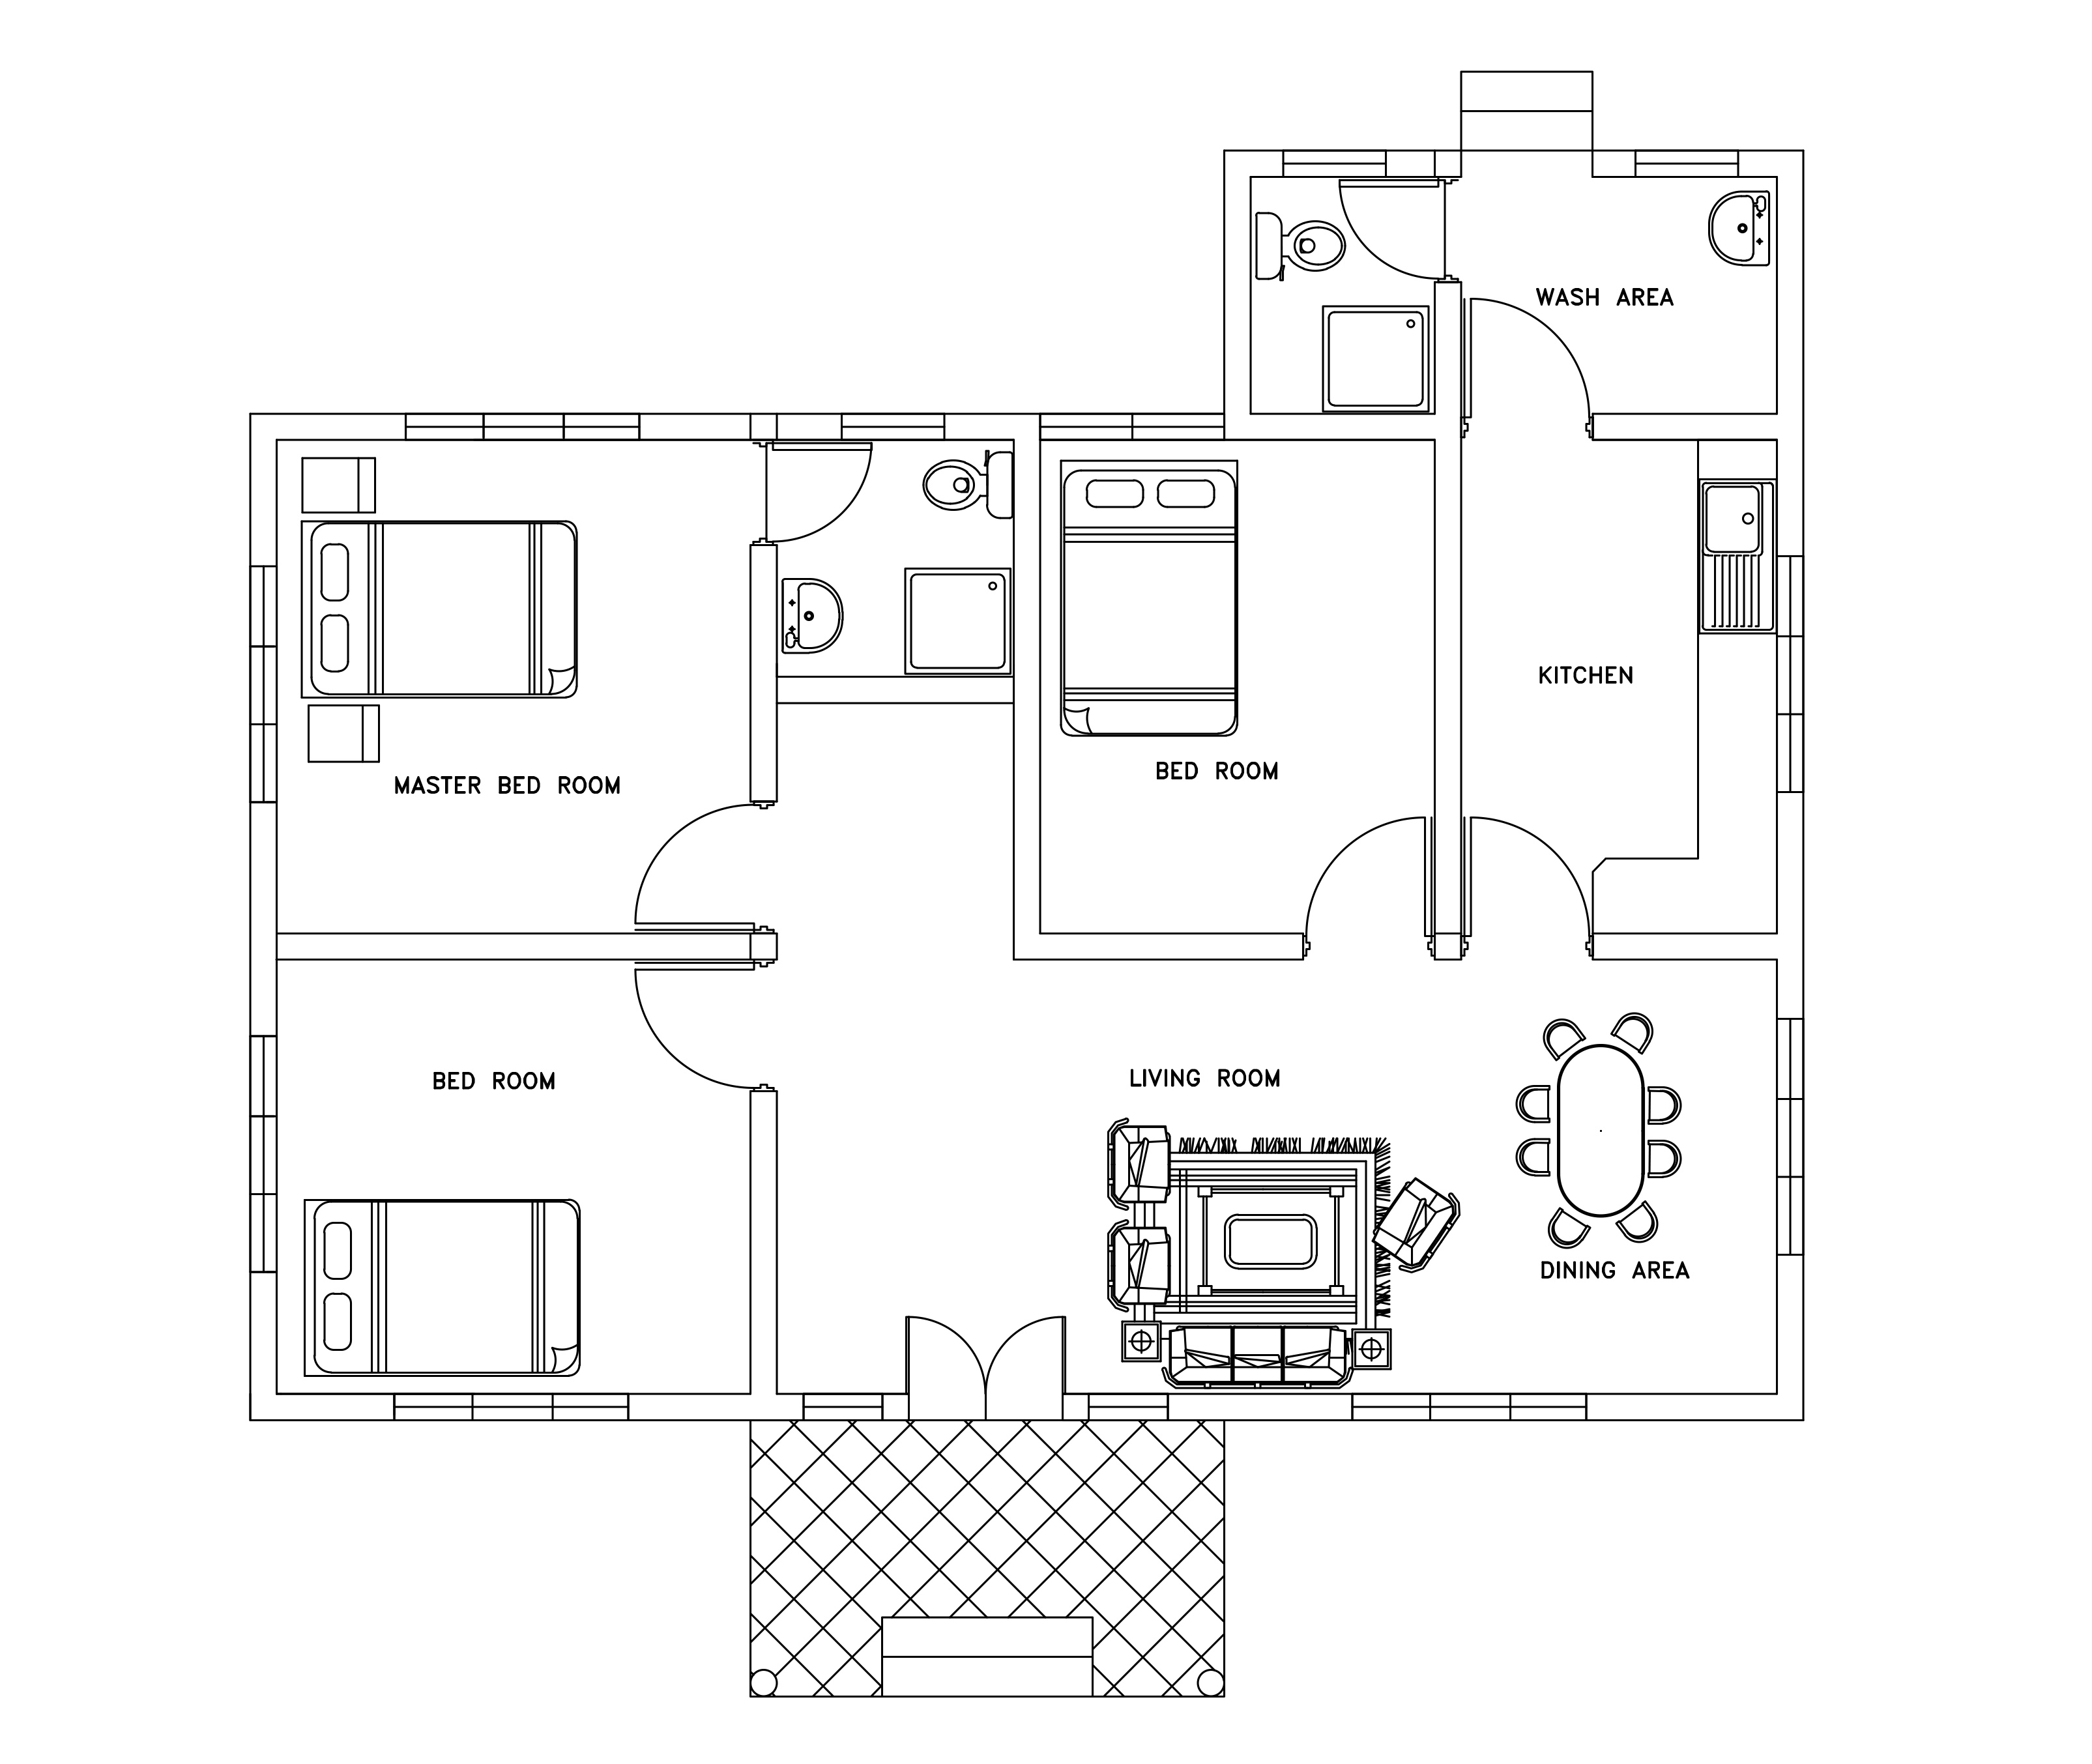 three bed room small house plan dwg net cad blocks and